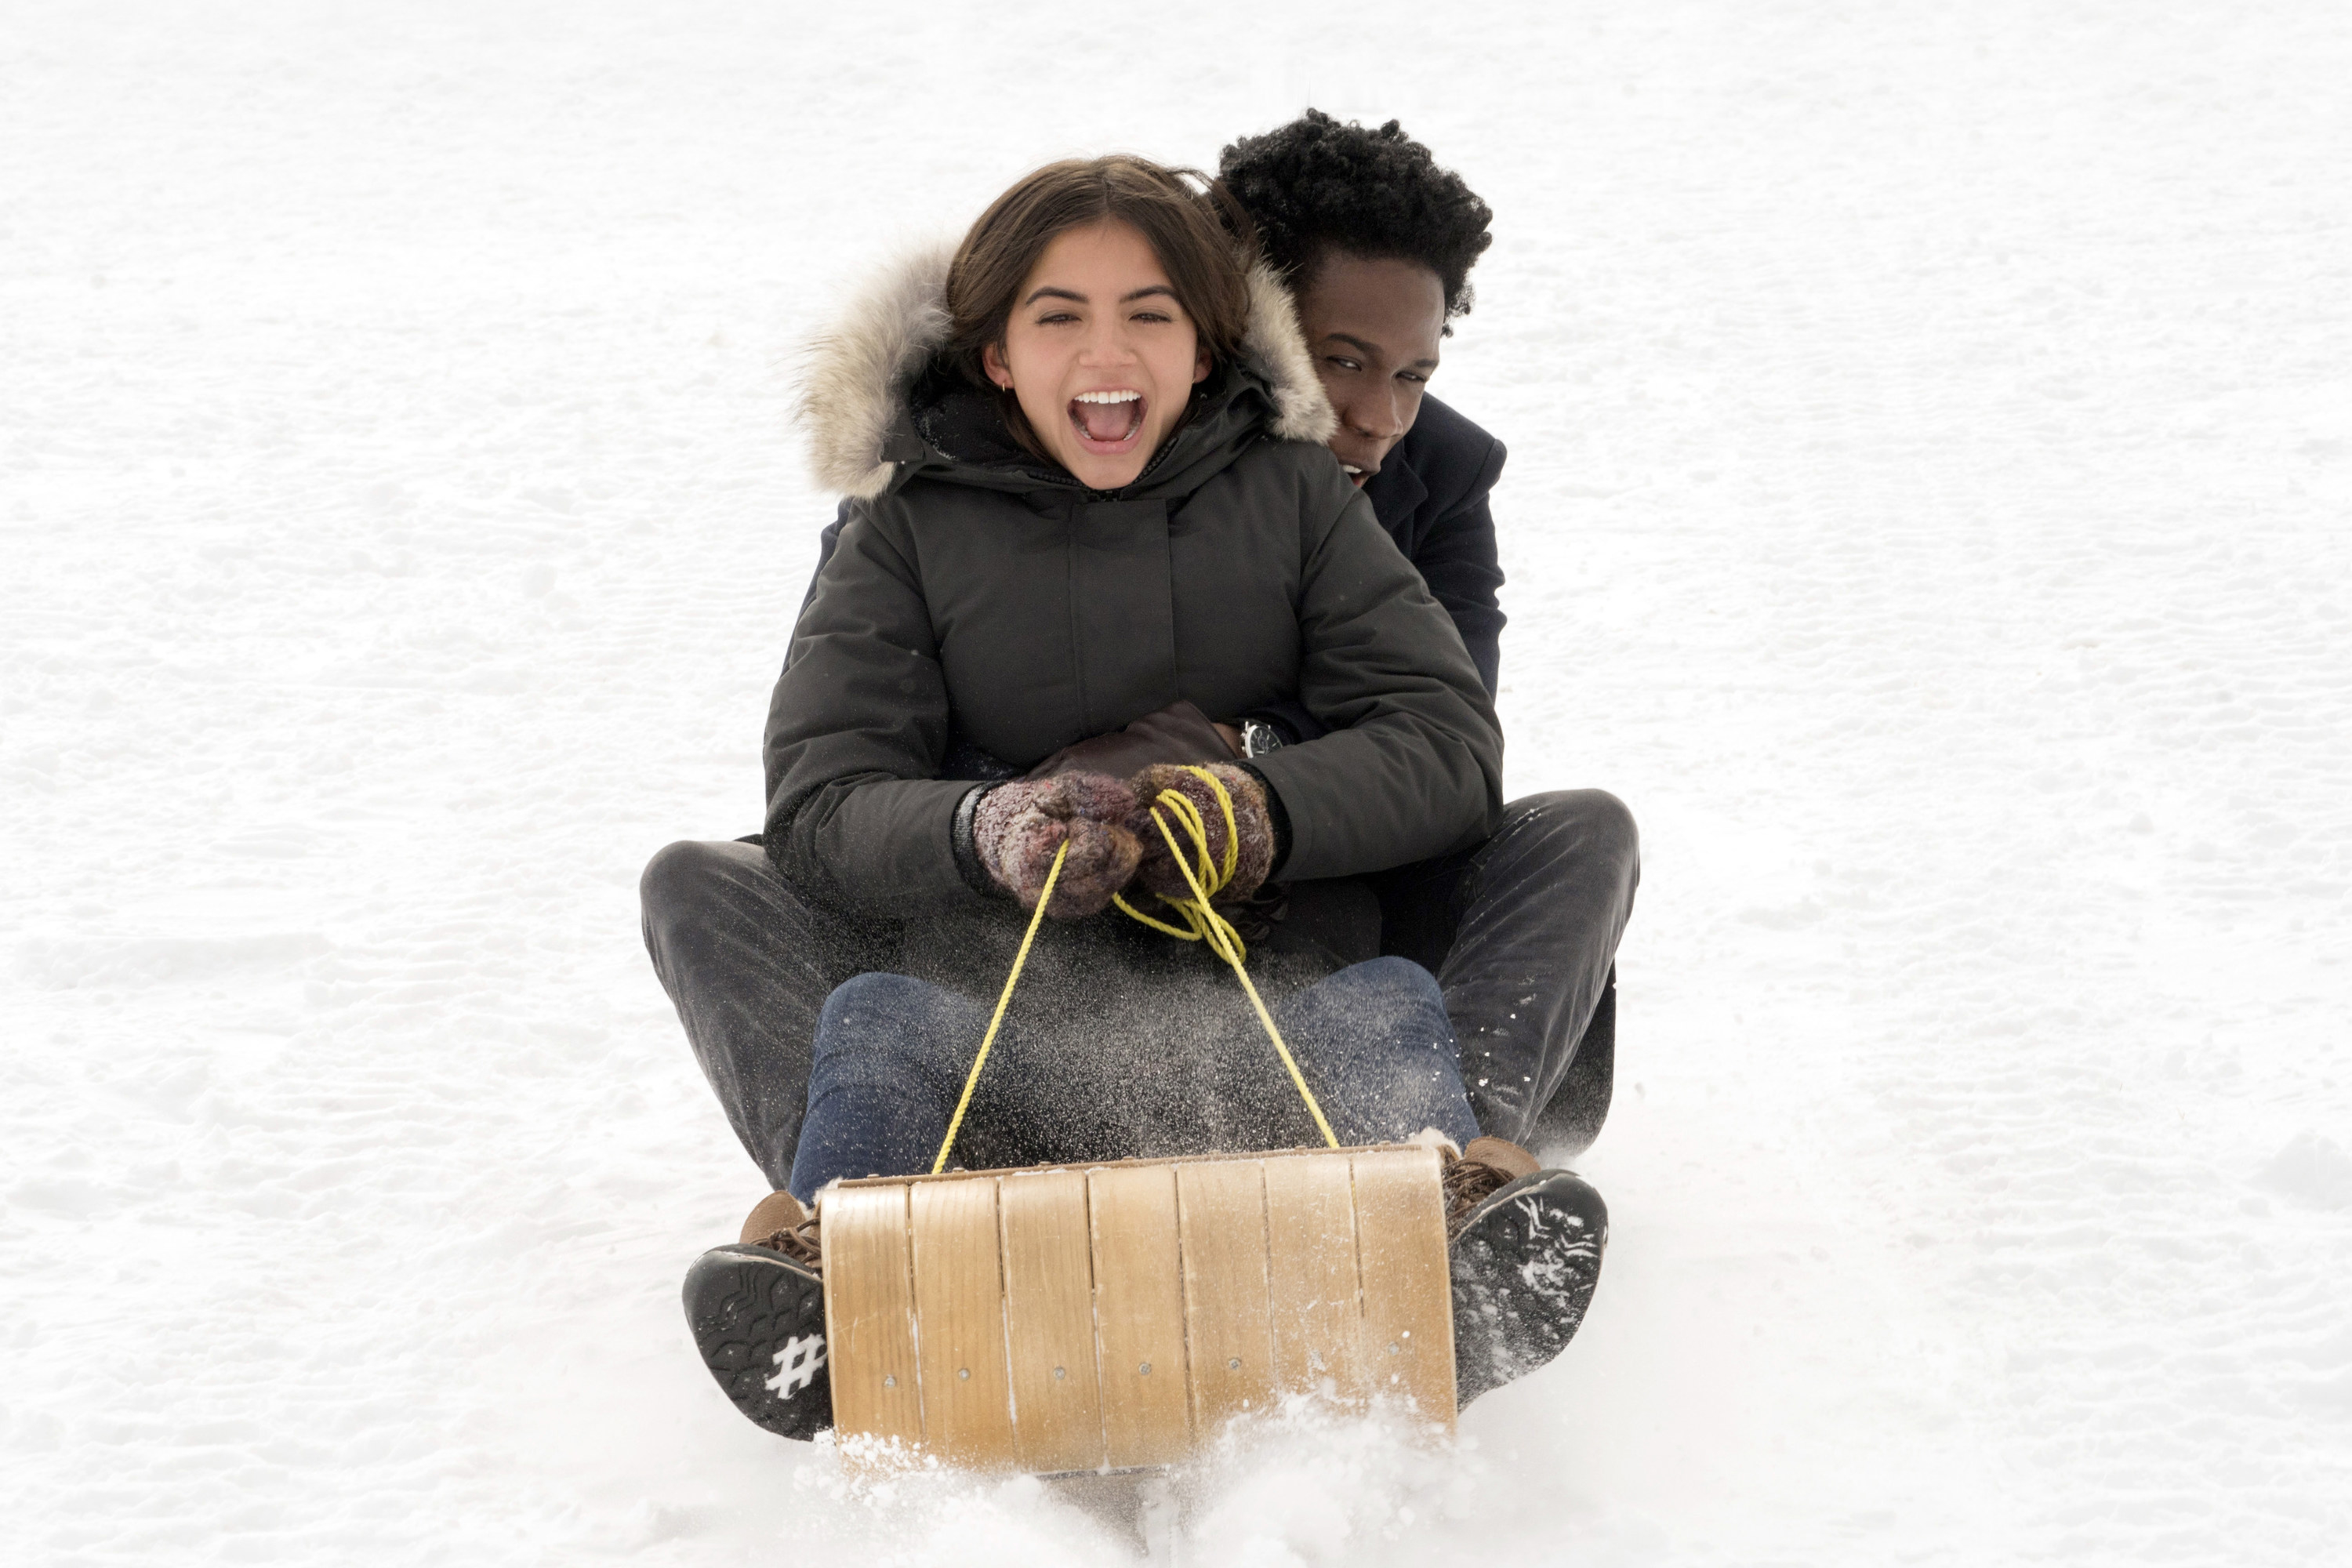 Two of the teenagers in Let It Snow sledding down the hill.